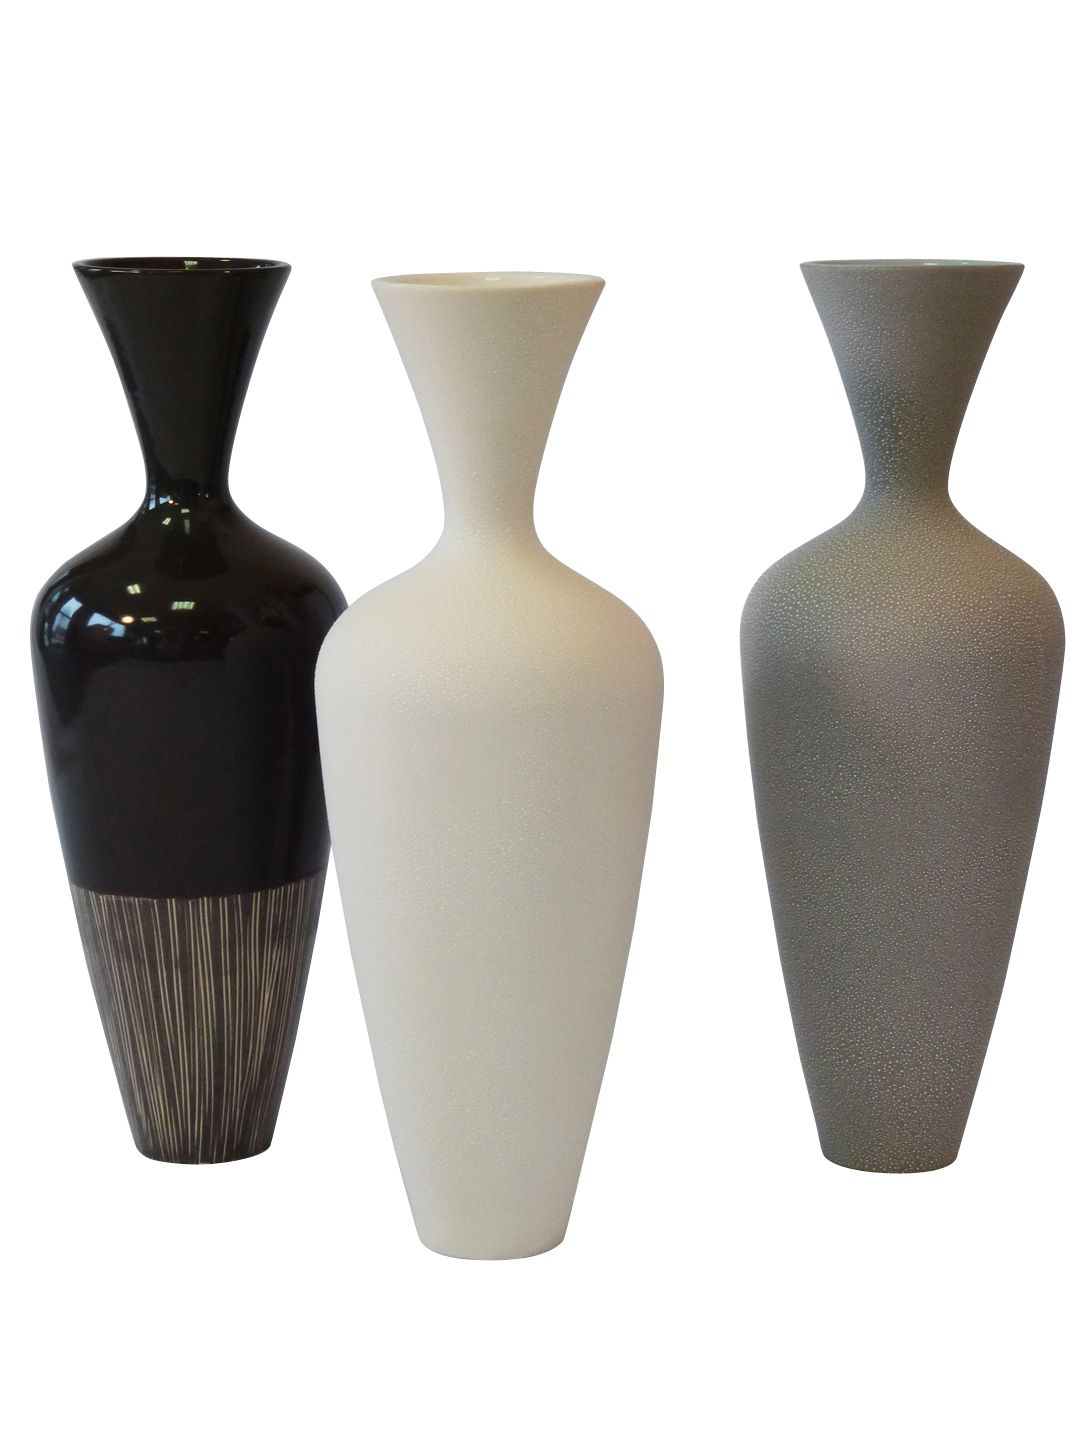 LES HERITIERS - Vases Ankor  #vase #color #decoration #home